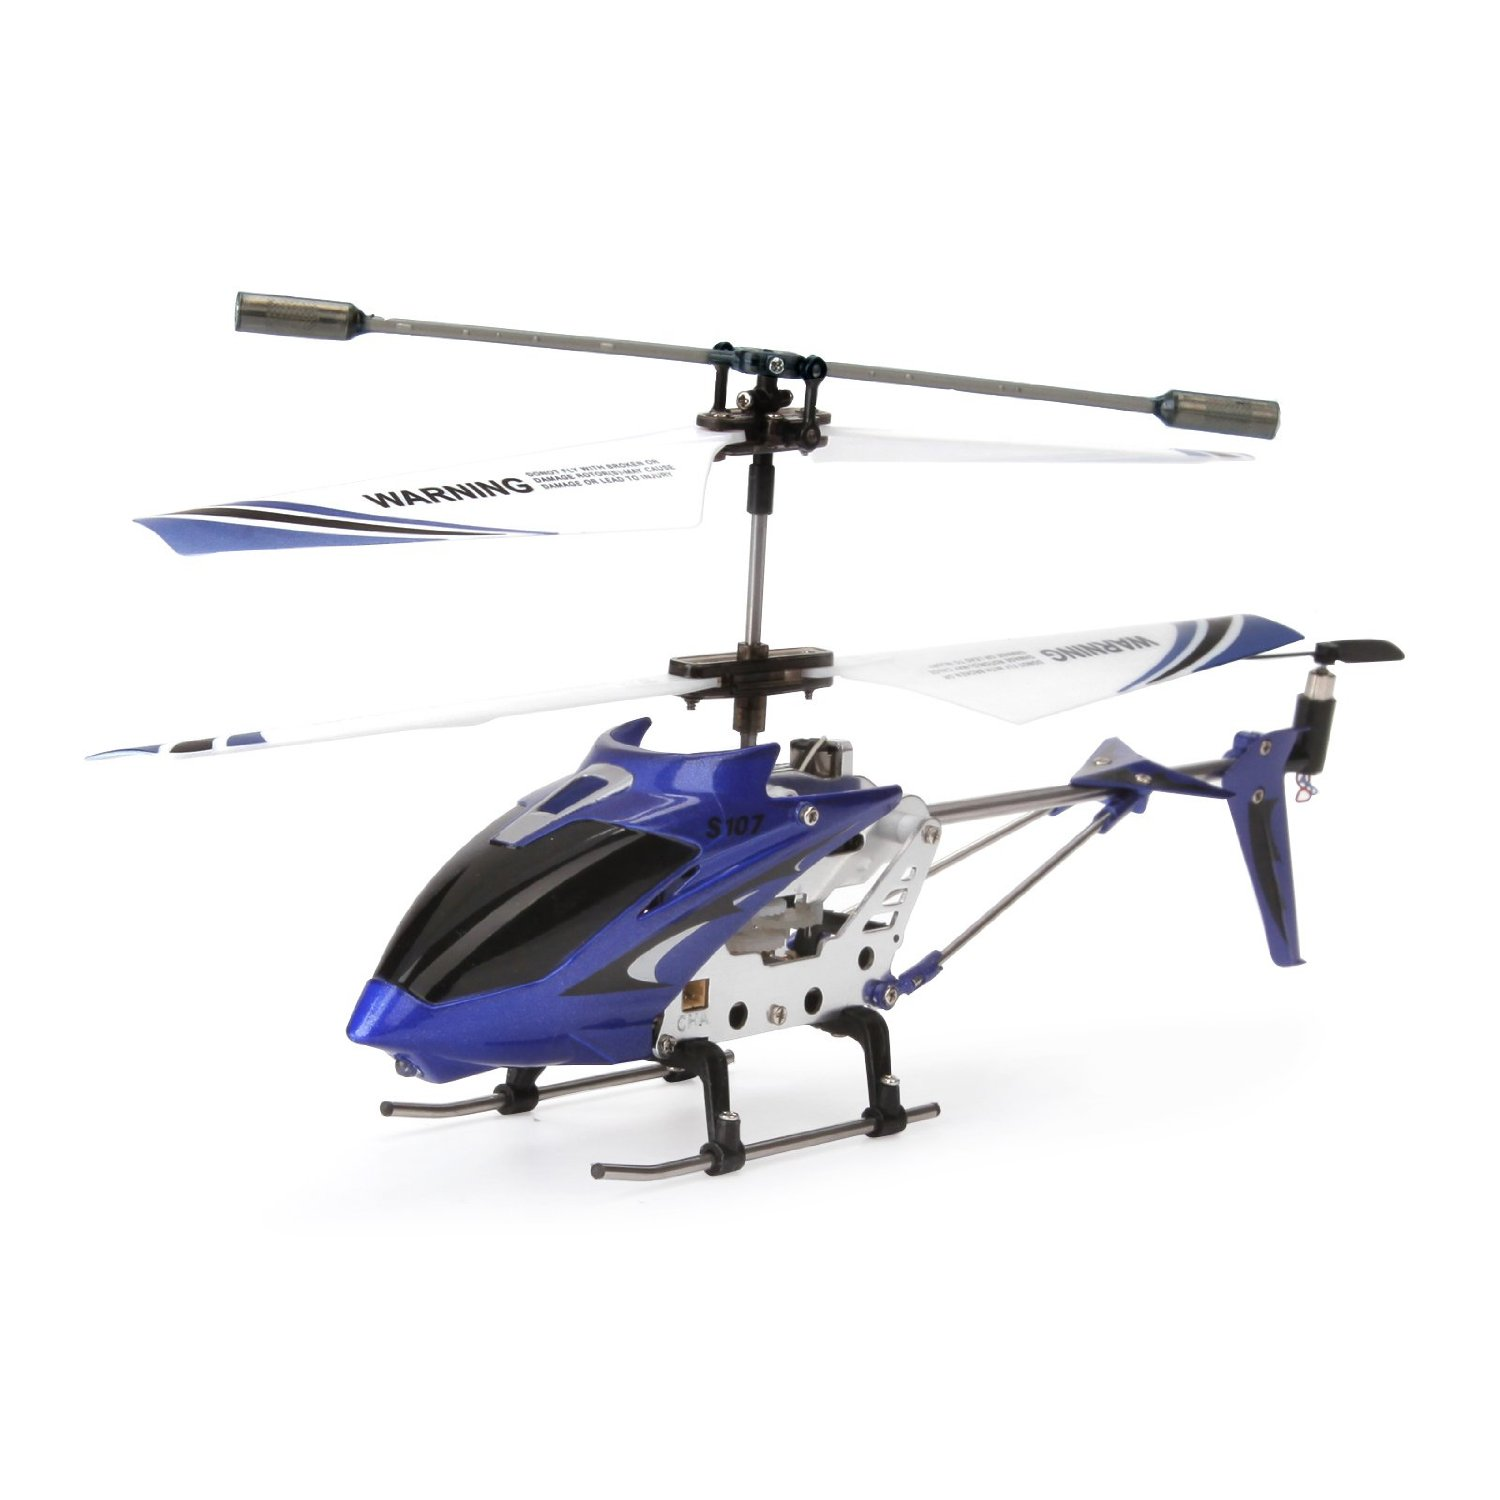 Channel rc helicopter with gyro